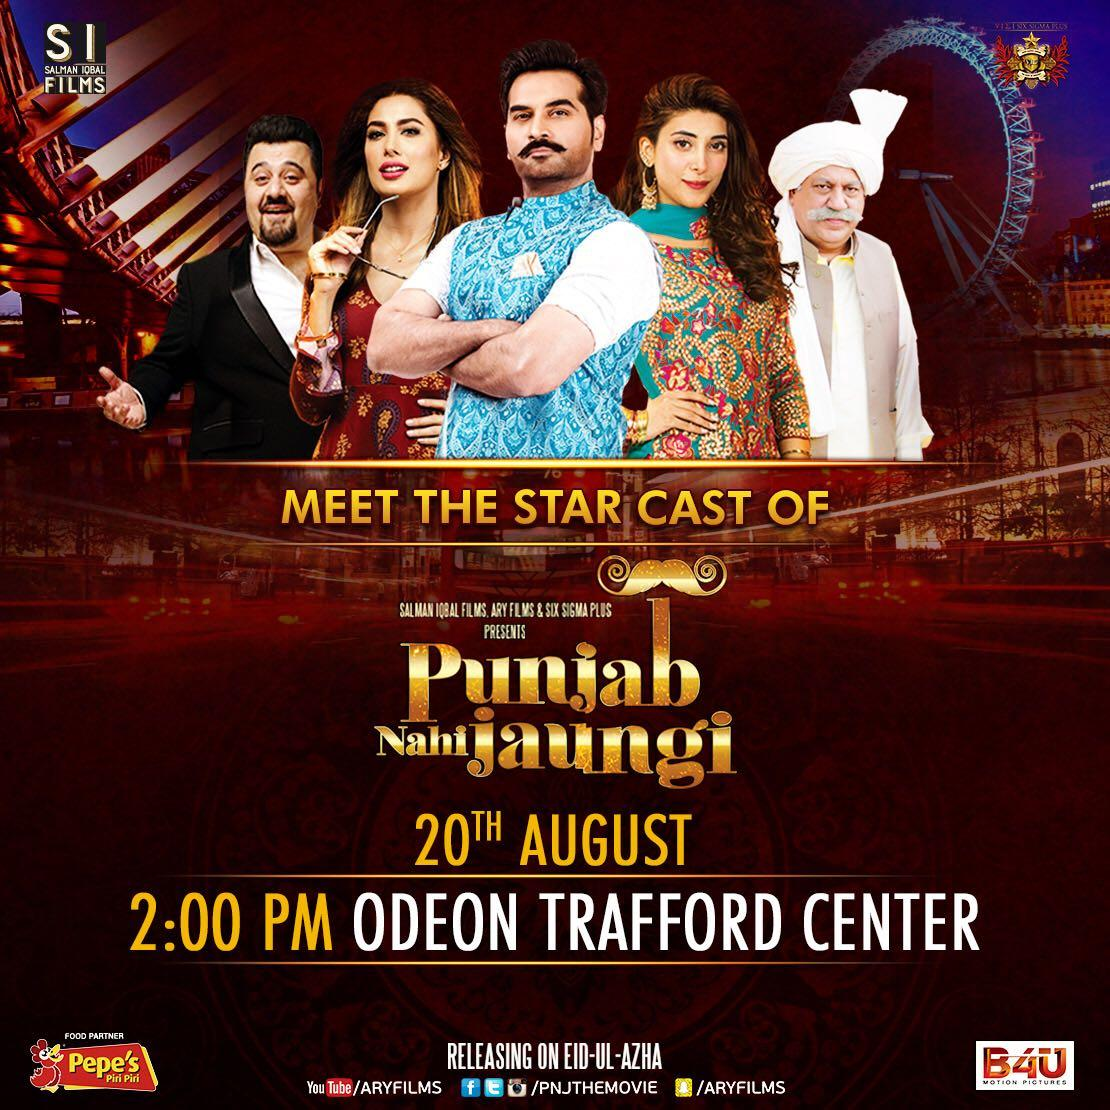 Here&#39;s the complete schedule of team #PunjabNahiJaungi&#39;s promotional tours for today - 20th August. See you #Bradford and #Manchester!<br>http://pic.twitter.com/CJyVcZEiz5